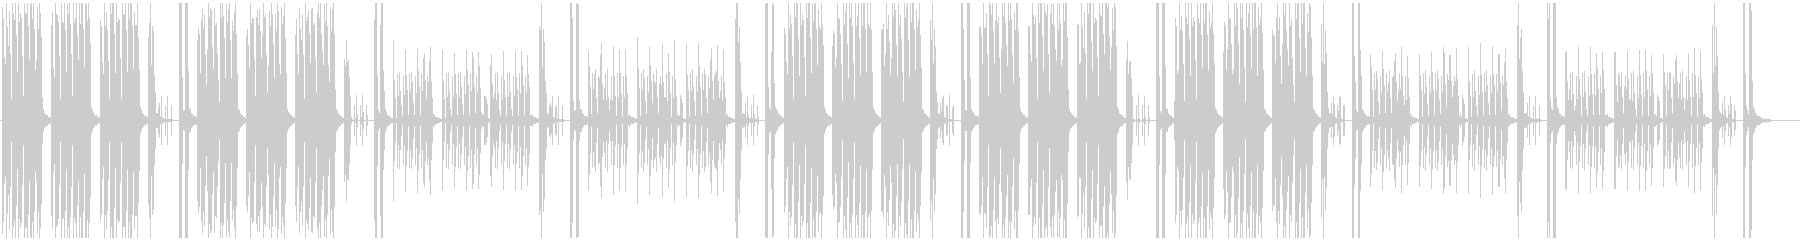 Light and comical BGM's unreproduced waveform